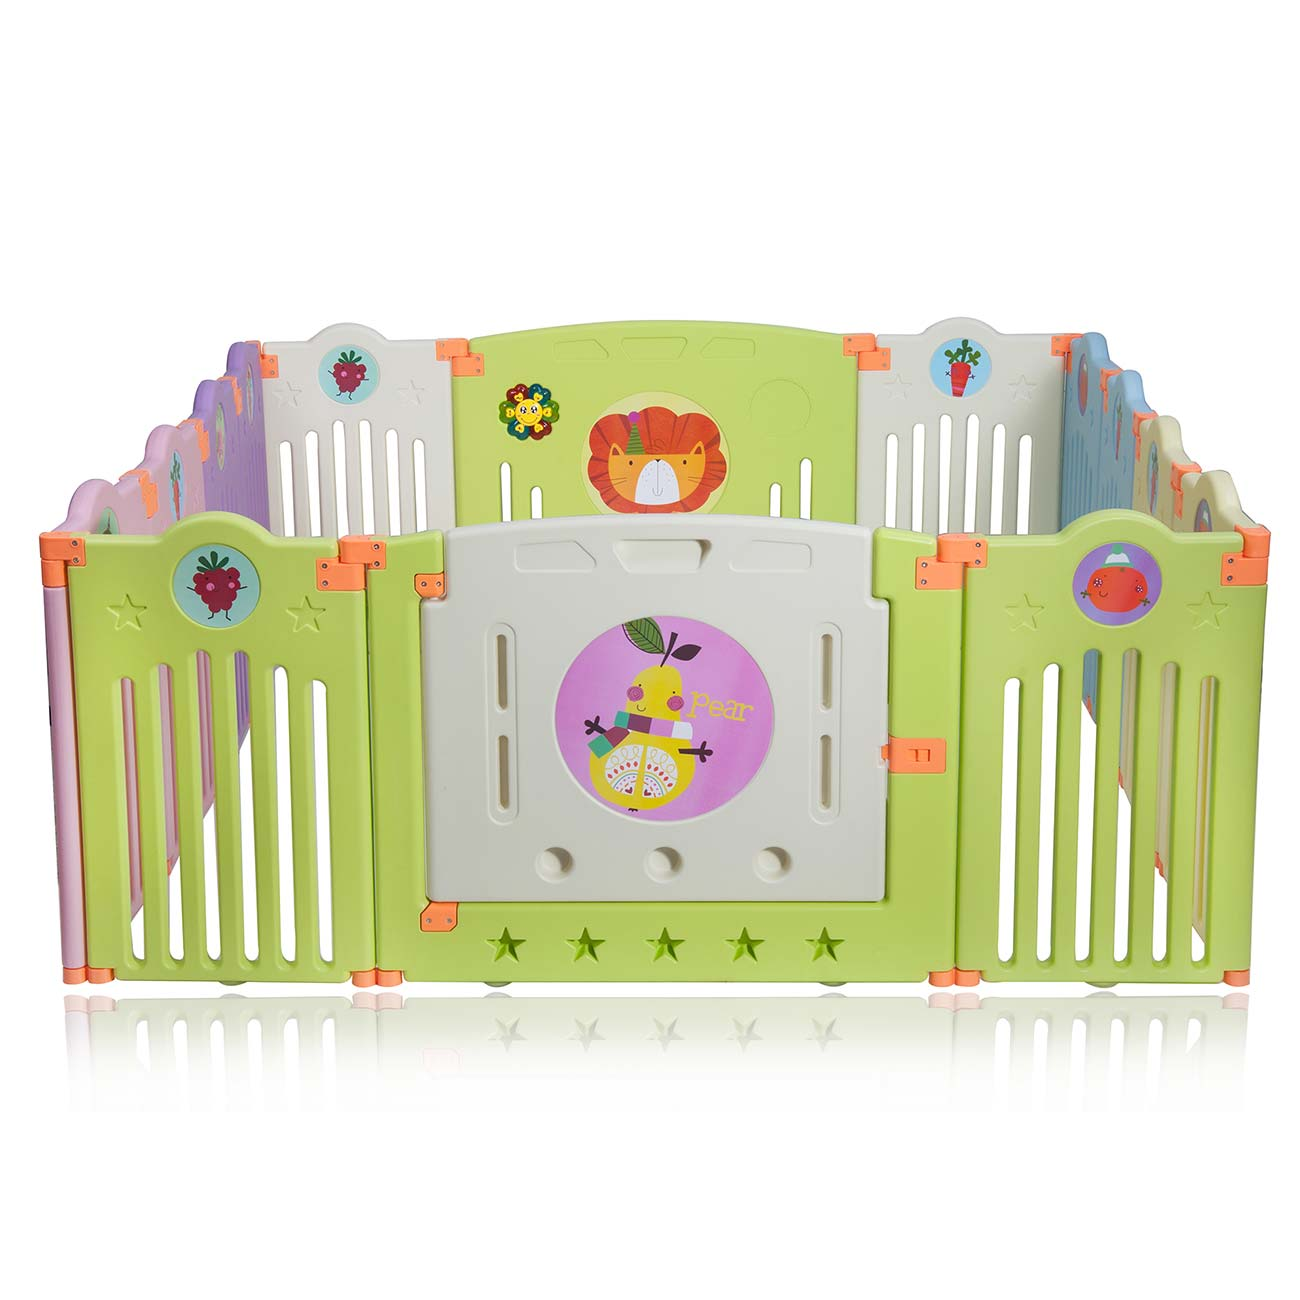 Baby Playpen Plastic Play Pen Foldable Portable Room